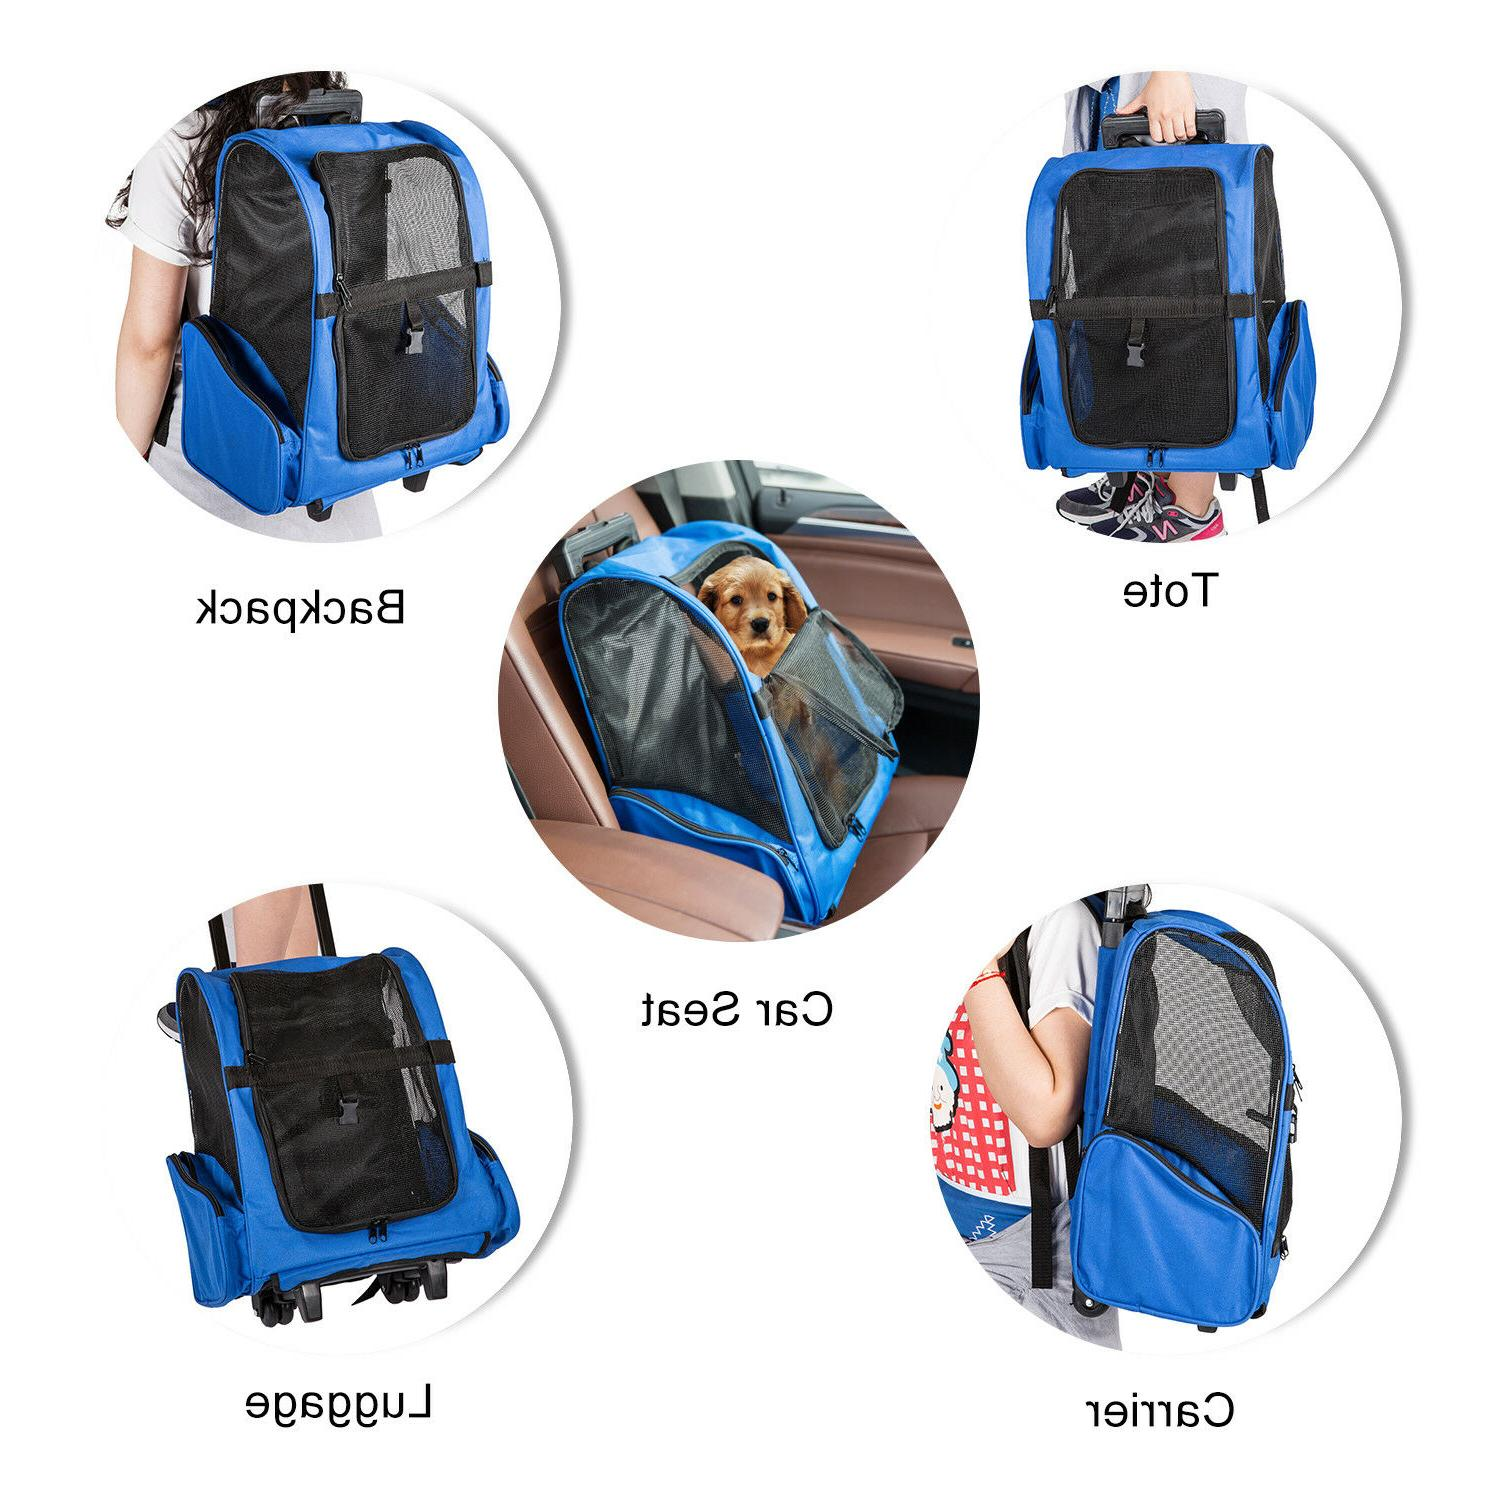 Pet Rolling BackPack Luggage Bags pproved